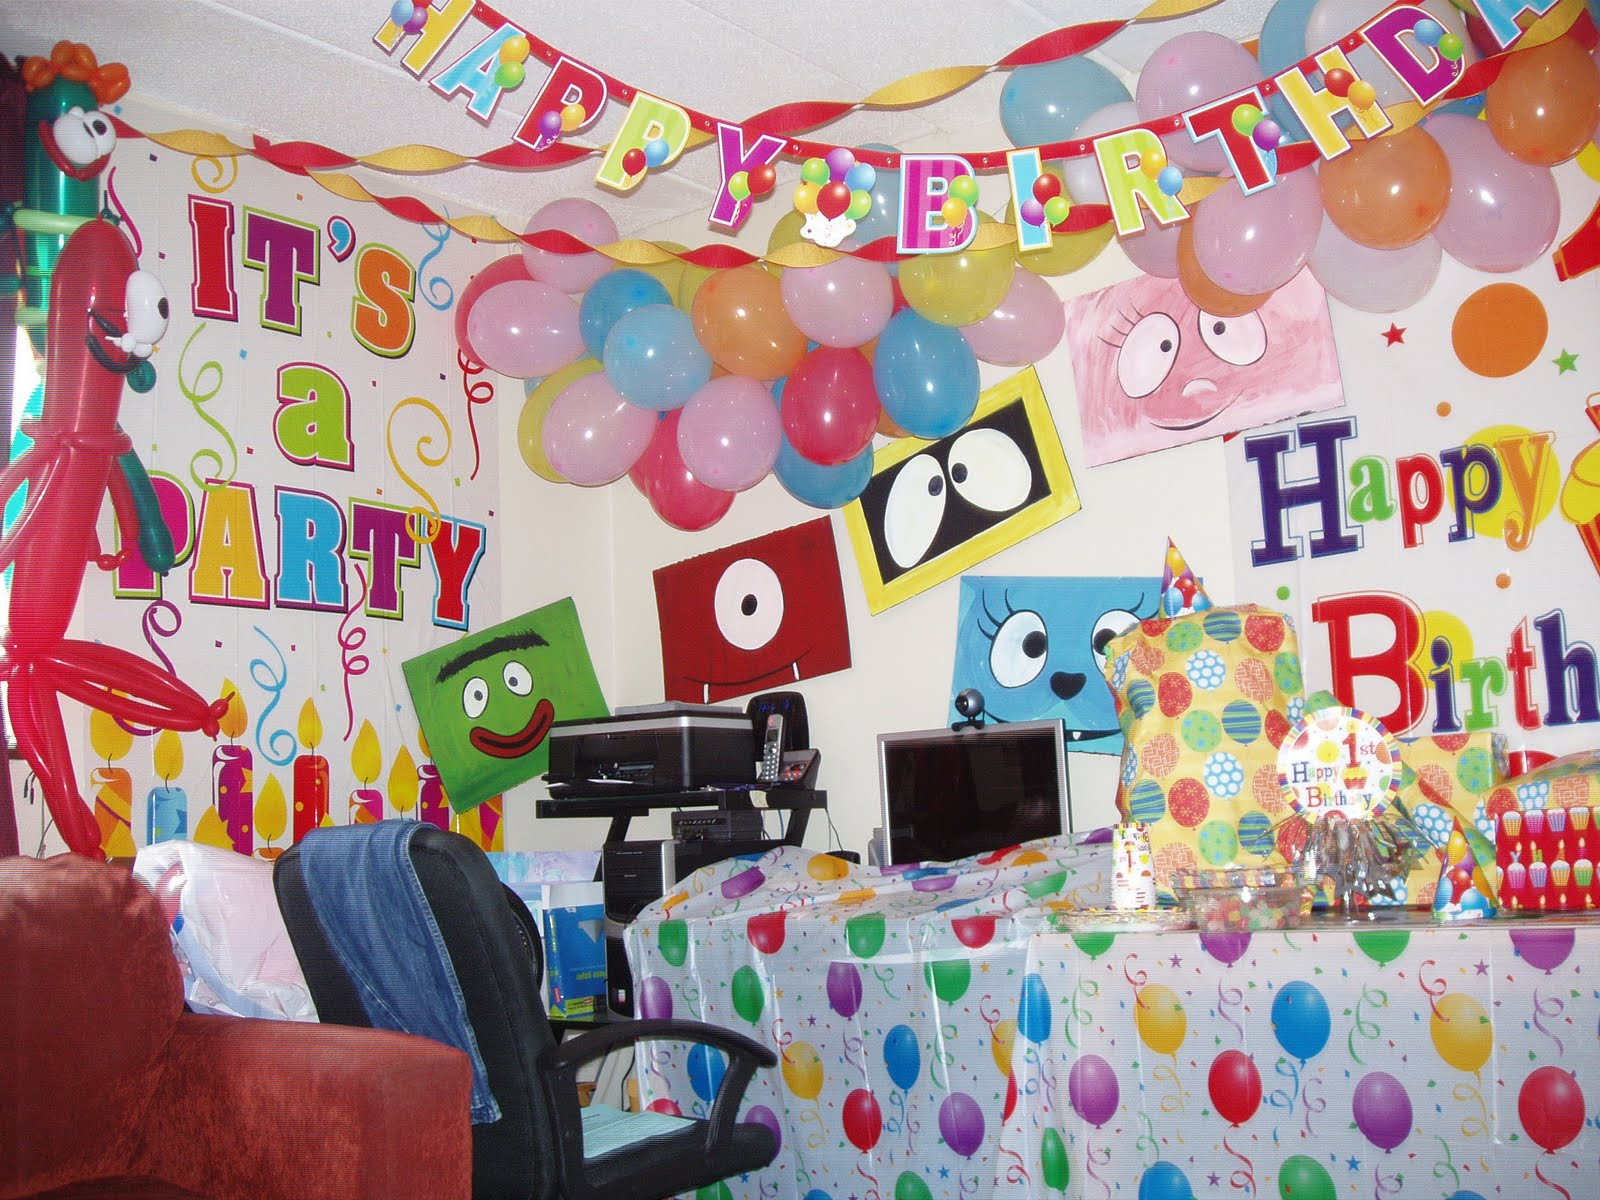 Birthday Party Decorations Photograph Katabolic Designs Bl